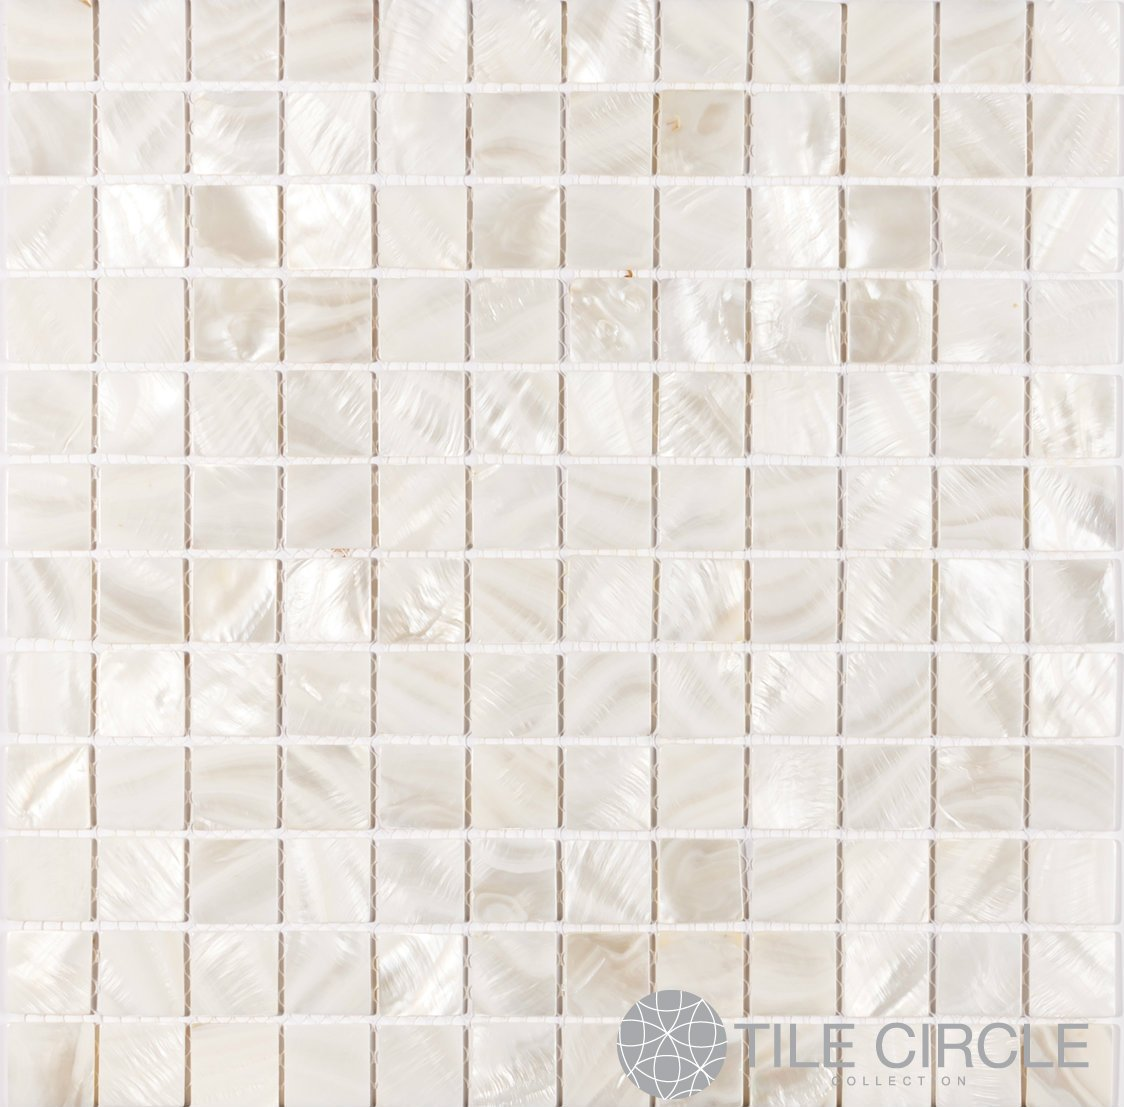 Mother of Pearl Shell Tile White 1'' X 1'' Squares (On a 12'' X 12'' Mesh) for Backsplash and Bathroom Walls and Floors